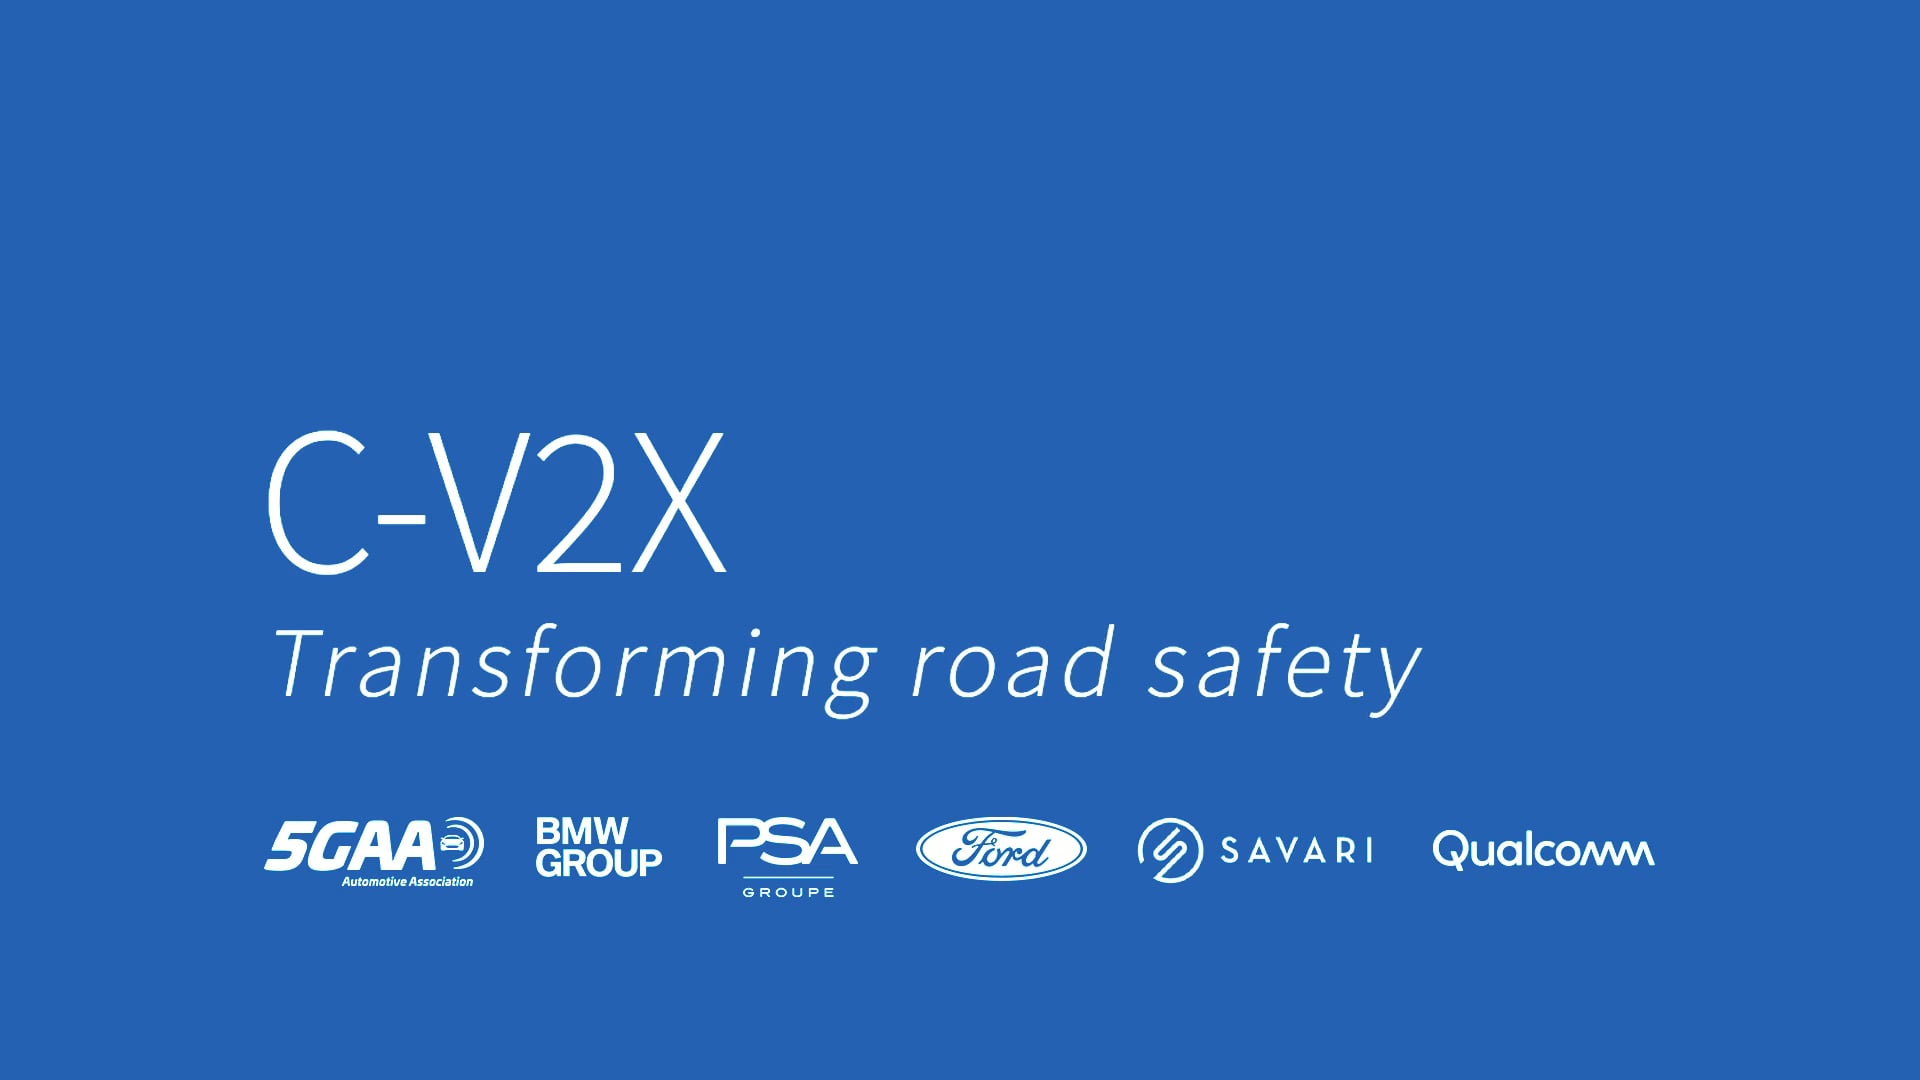 Ford, BMW, PSA e 5G Automotive Association insieme per sperimentare il sistema C-V2X thumbnail